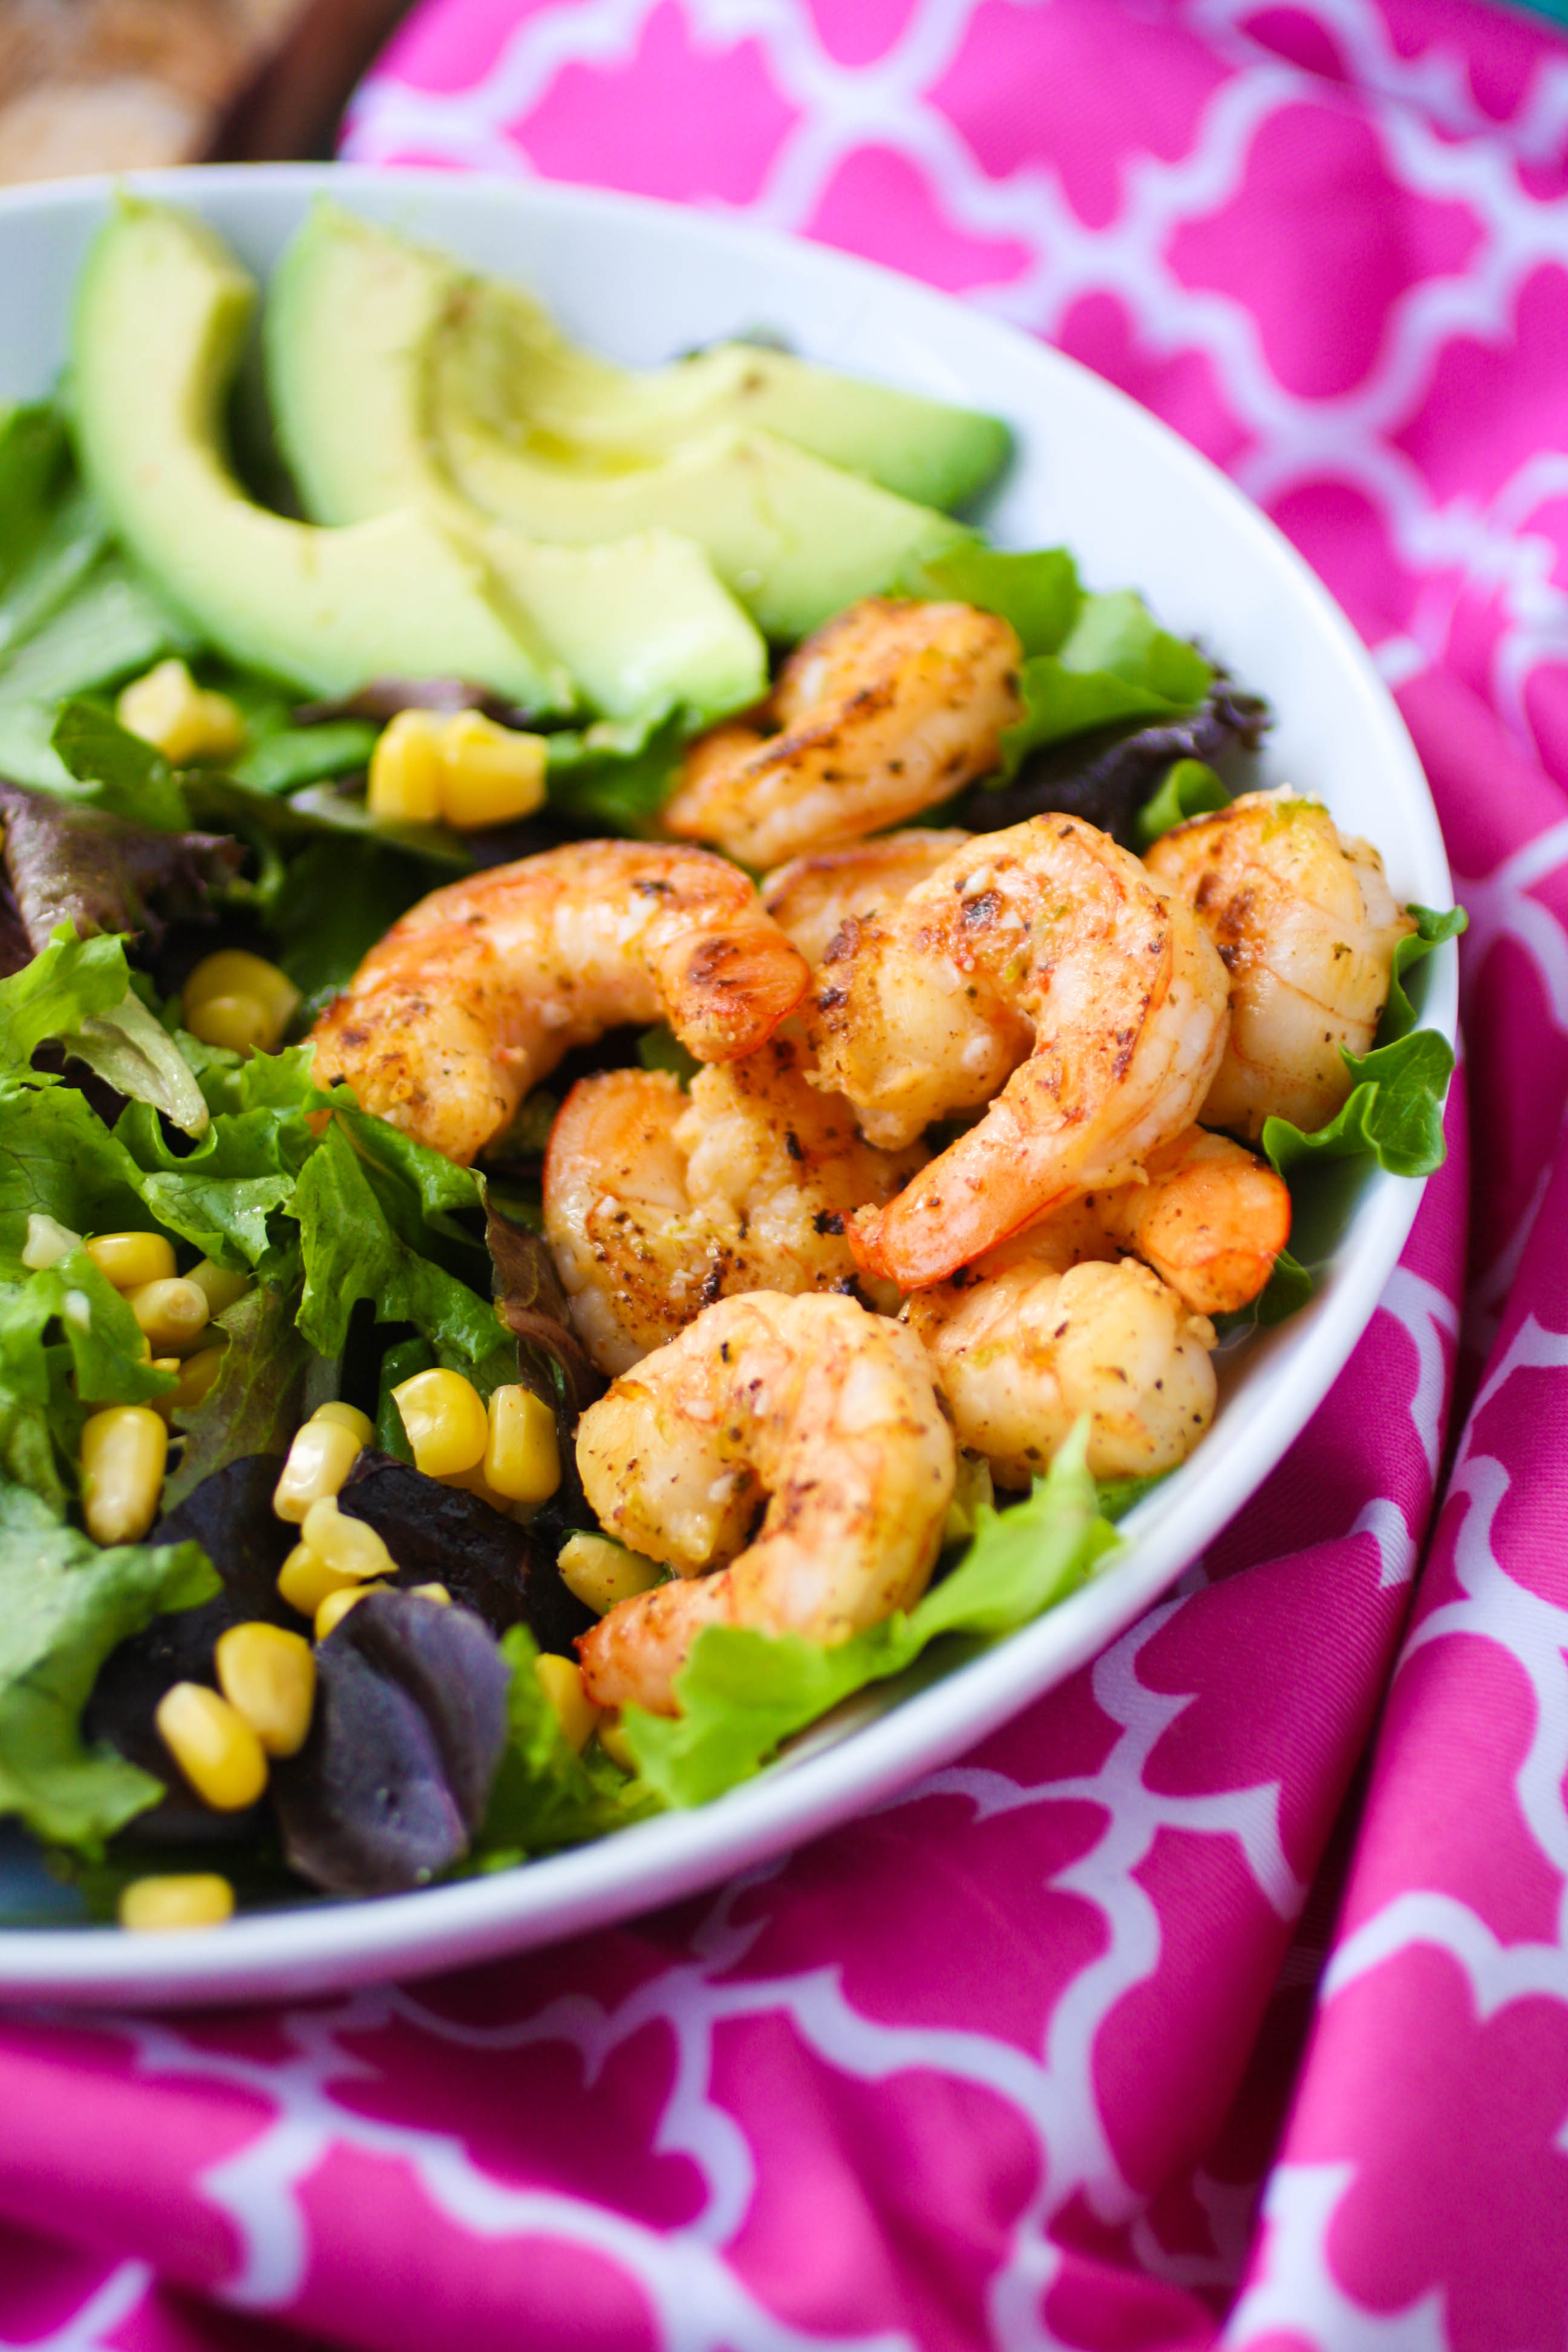 Simple Skillet Shrimp Salad with Lime Vinaigrette is a simple salad that's delicious! Make Simple Skillet Shrimp Salad with Lime Vinaigrette for your next meal.